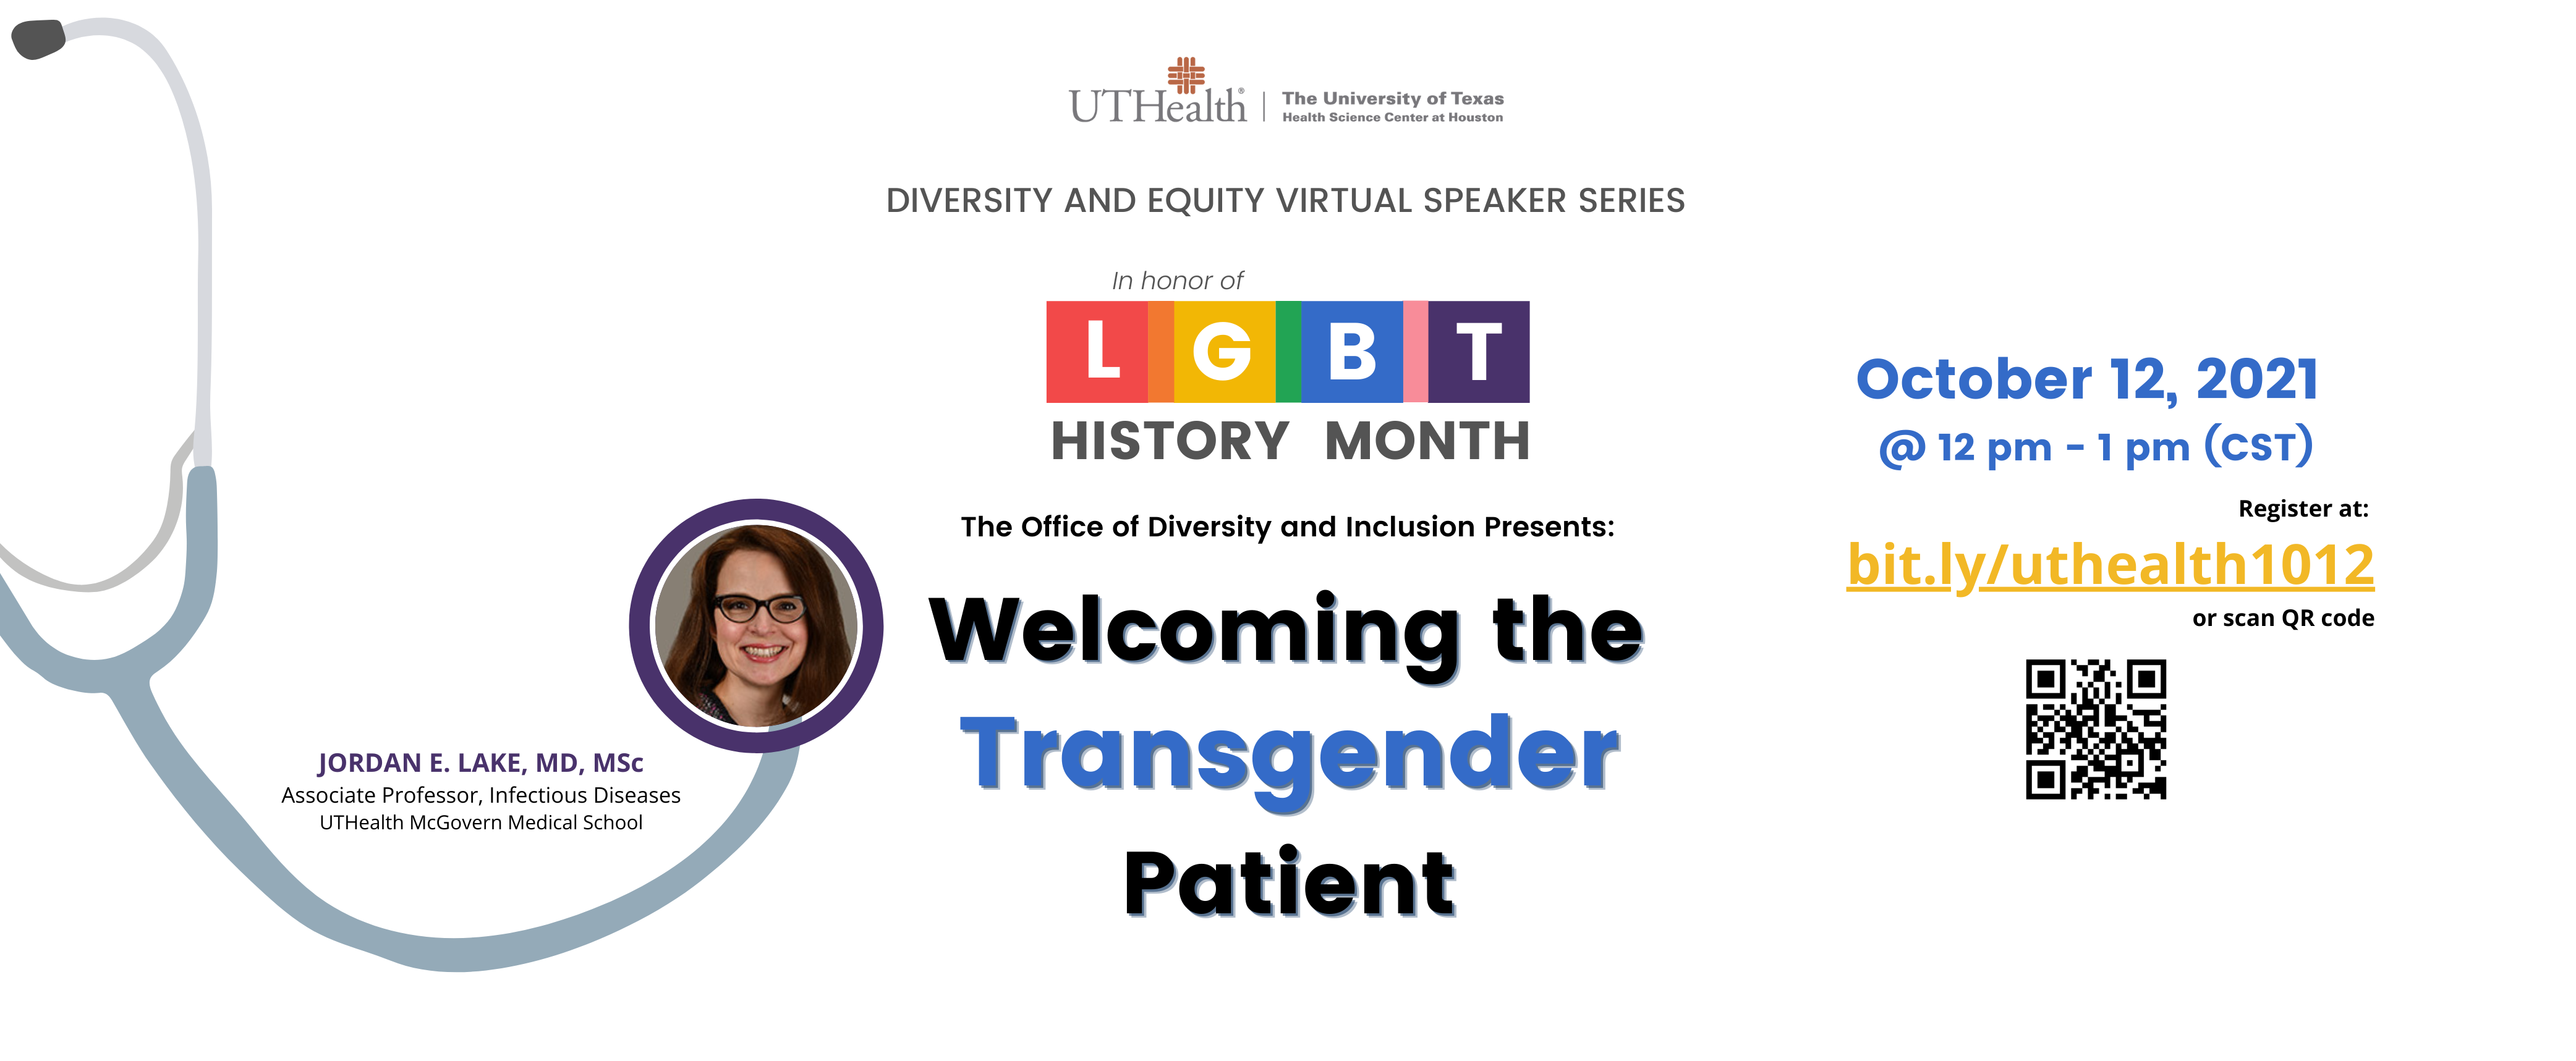 Flyer for Diversity and Equity Virtual Speaker Series - October 12th register at bit.ly/uthealth1012